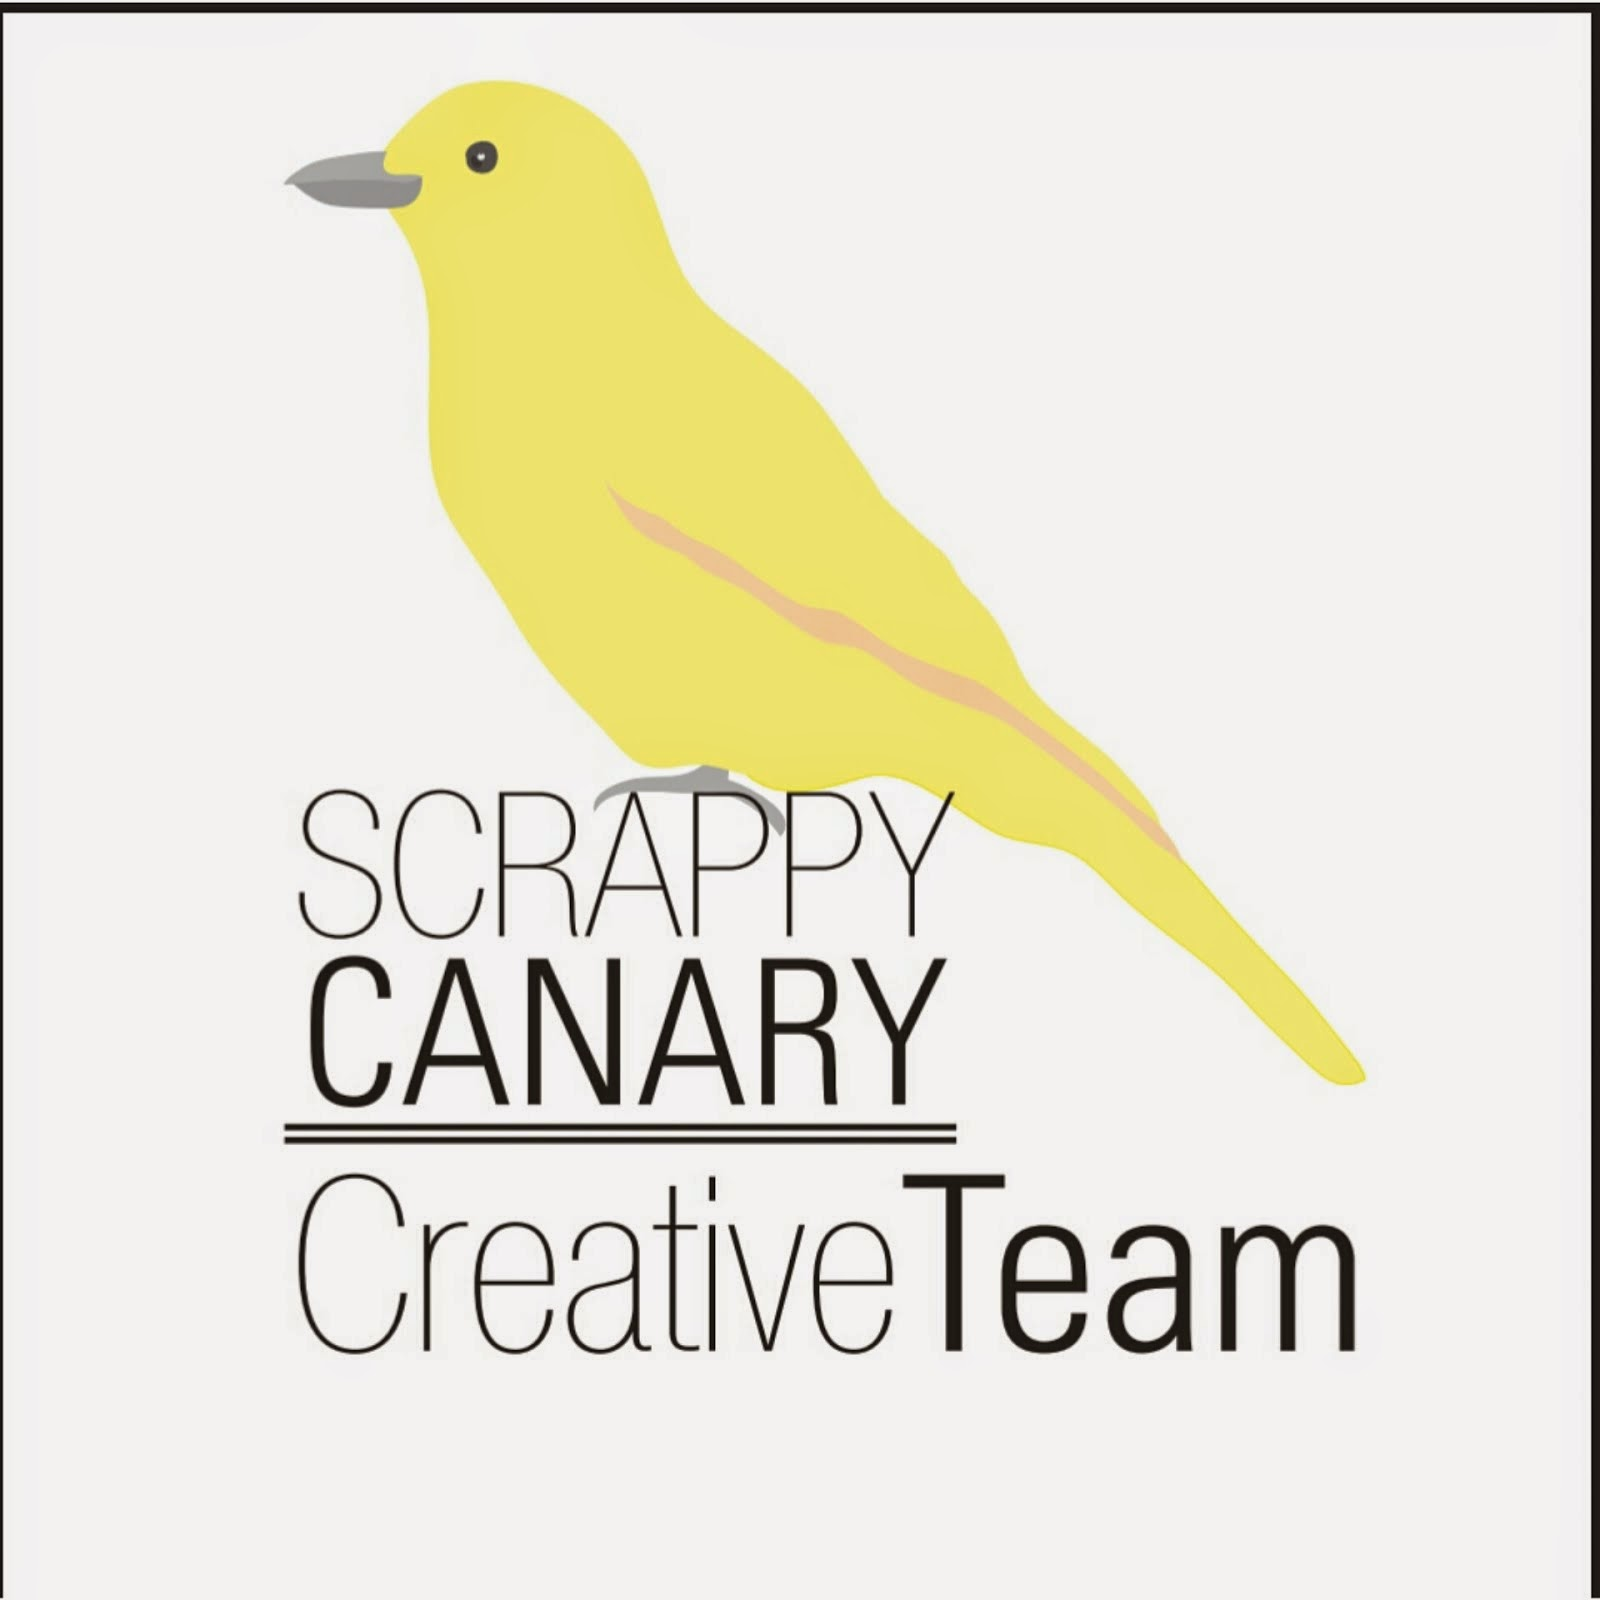 Scrappy Canary